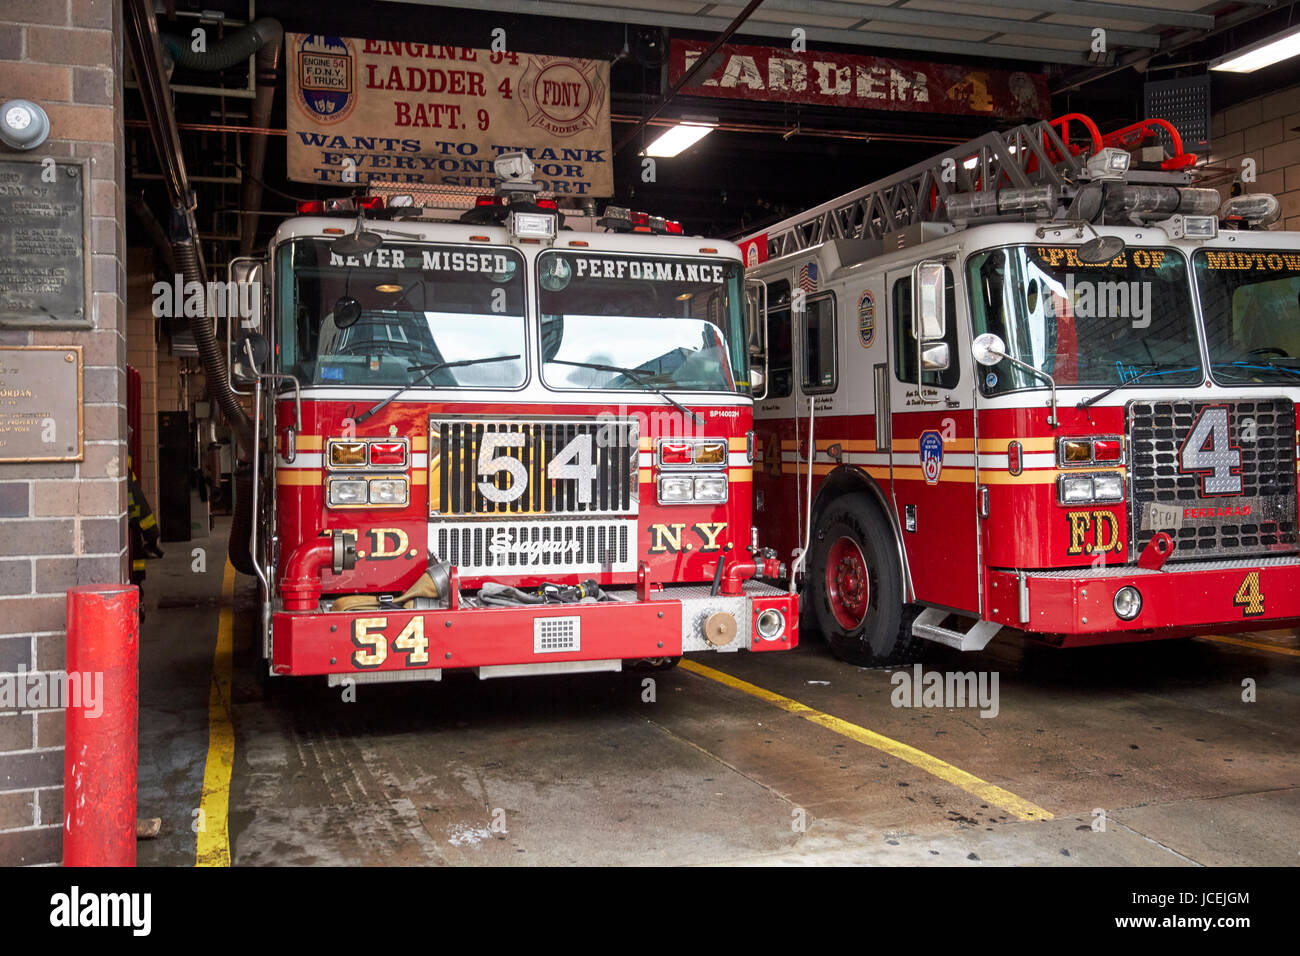 fdny fire station with engine 54 and ladder 5 battalion 9 New York City USA